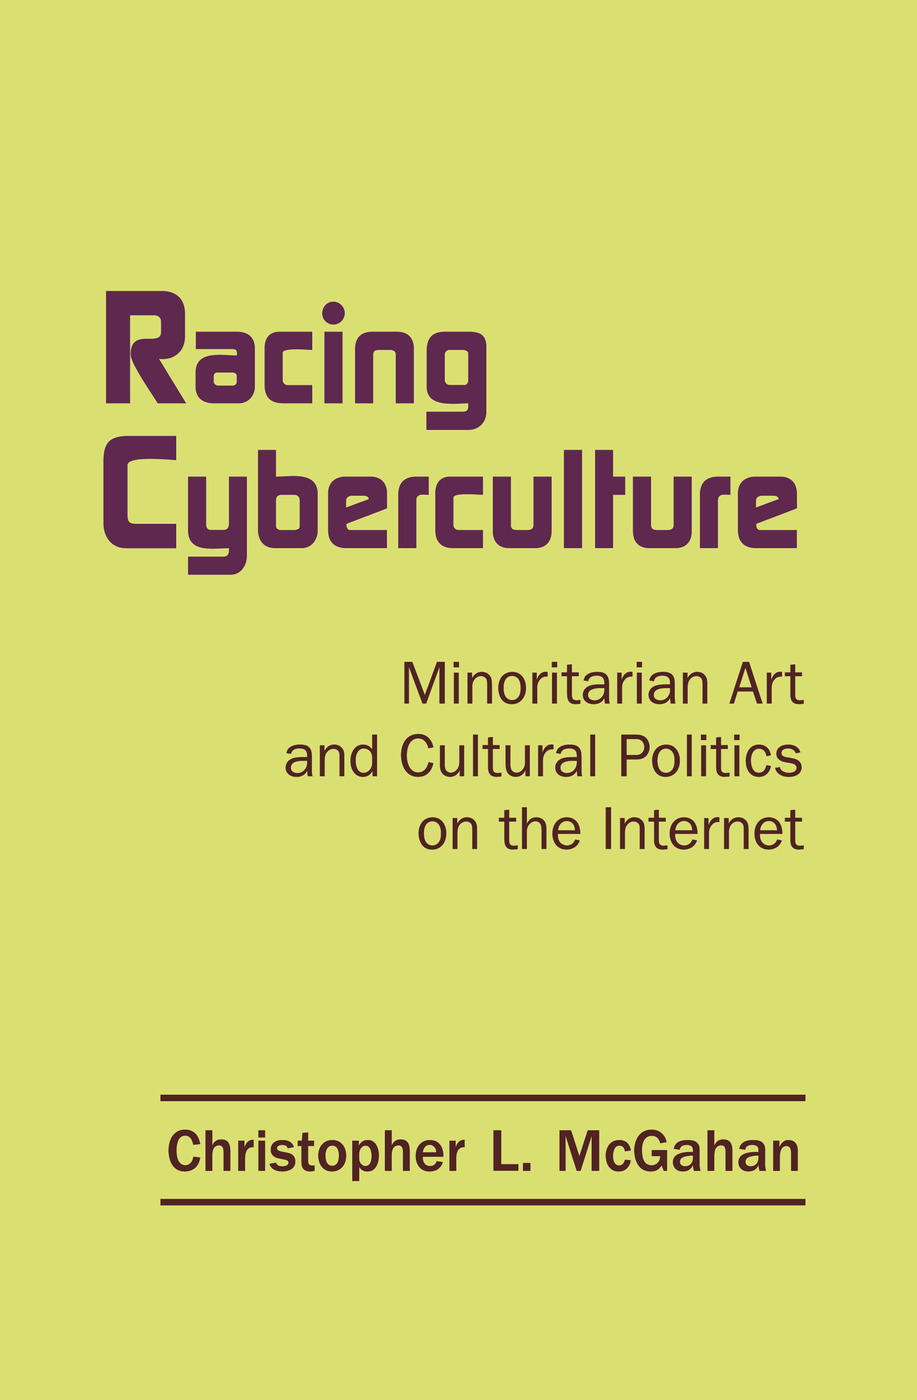 Racing Cyberculture: Minoritarian Art and Cultural Politics on the Internet book cover